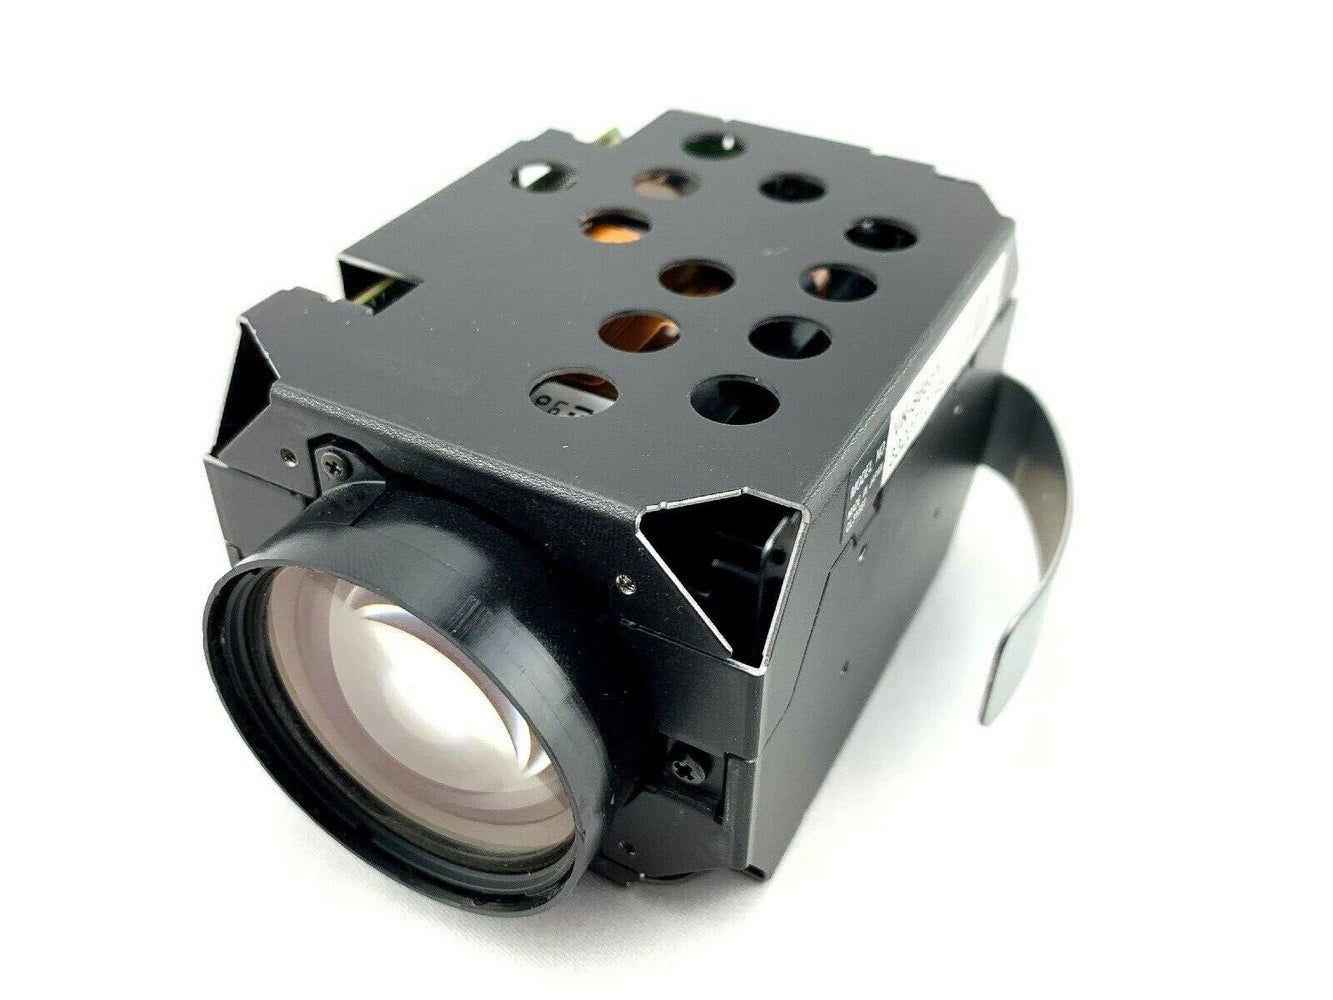 "Hitachi VK-S654N 35x Optical Zoom High Resolution Camera Module 1/4"" NTSC CCTV"